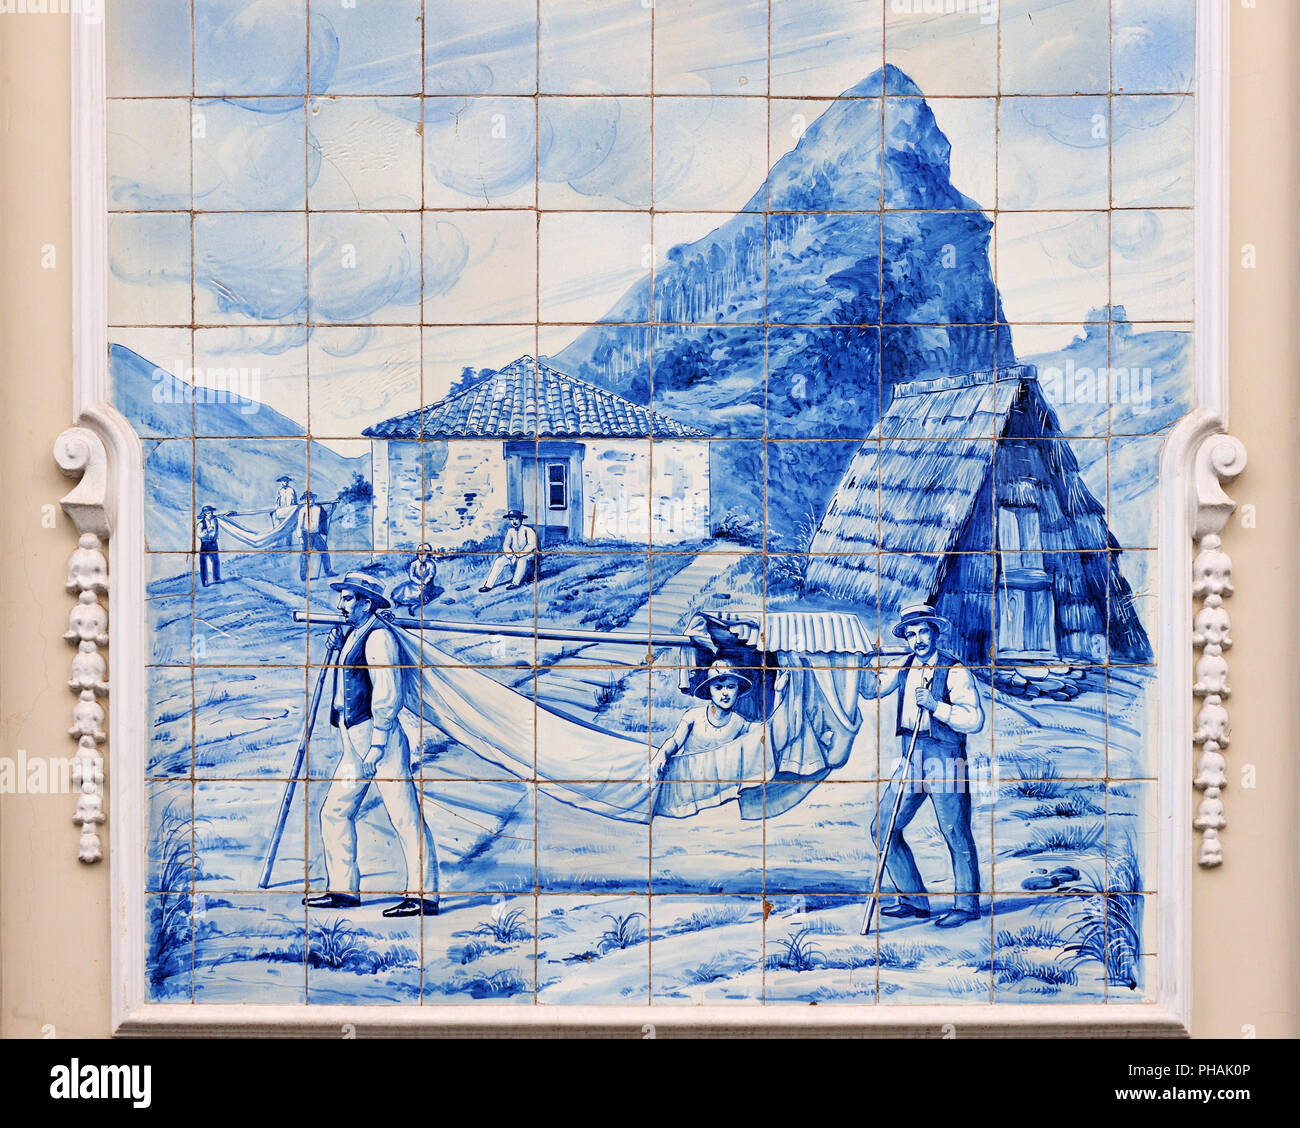 Traditional blue tiles (Azulejos) in Funchal. Madeira, Portugal - Stock Image